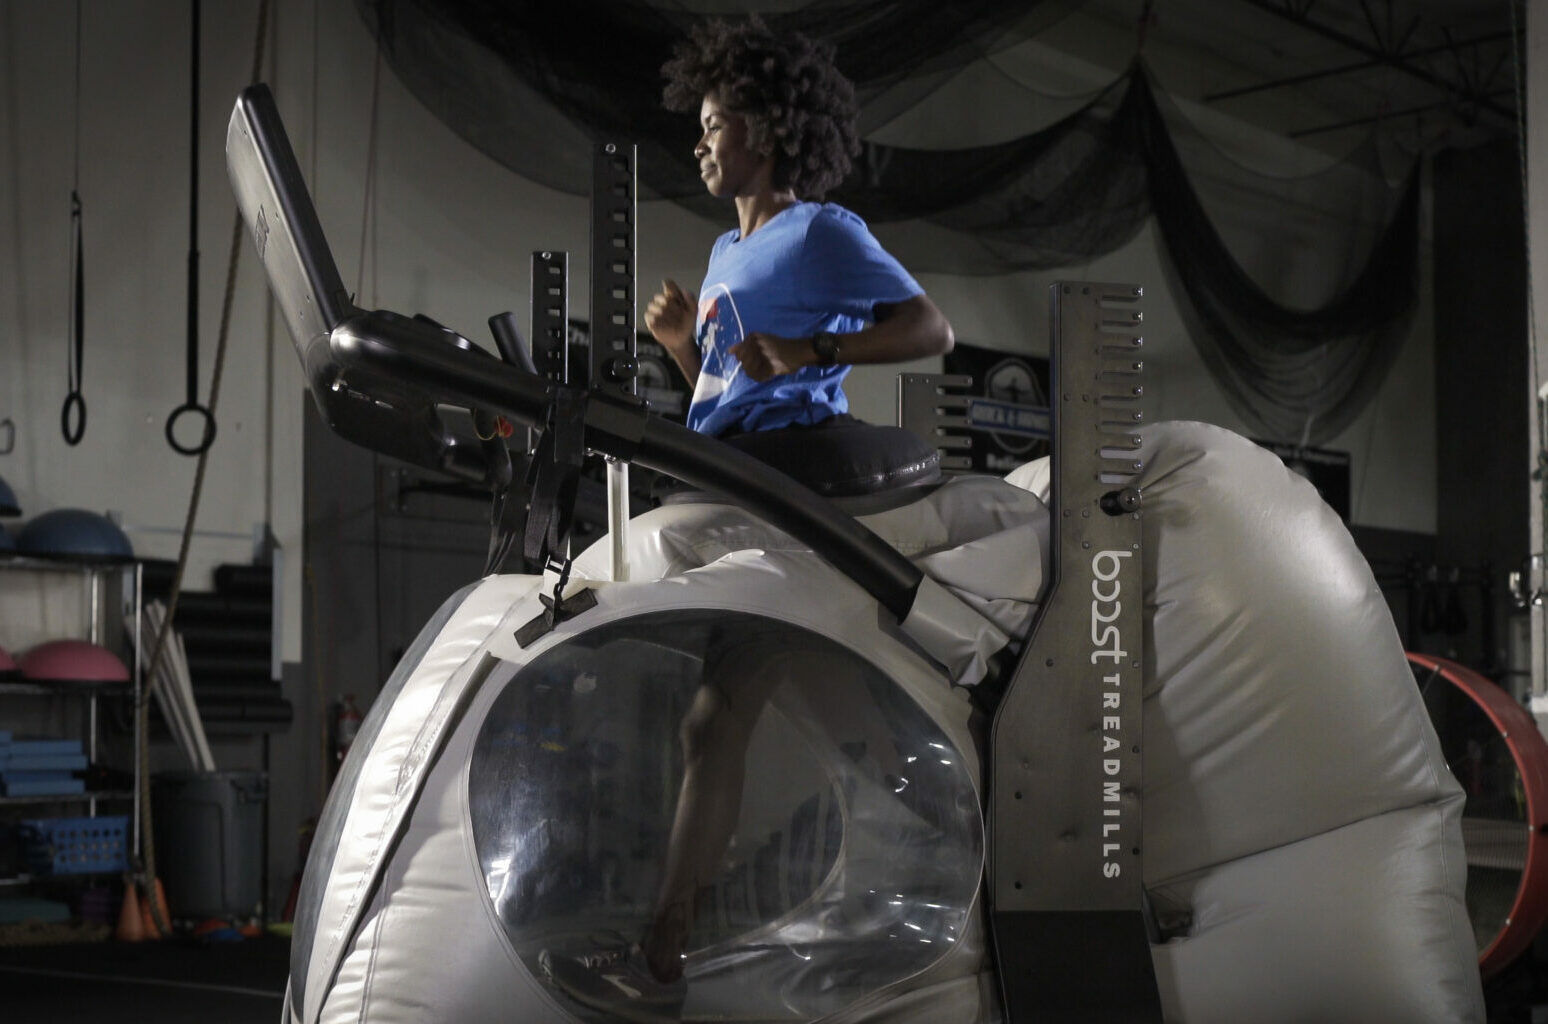 Boost Treadmill with Track Athlete